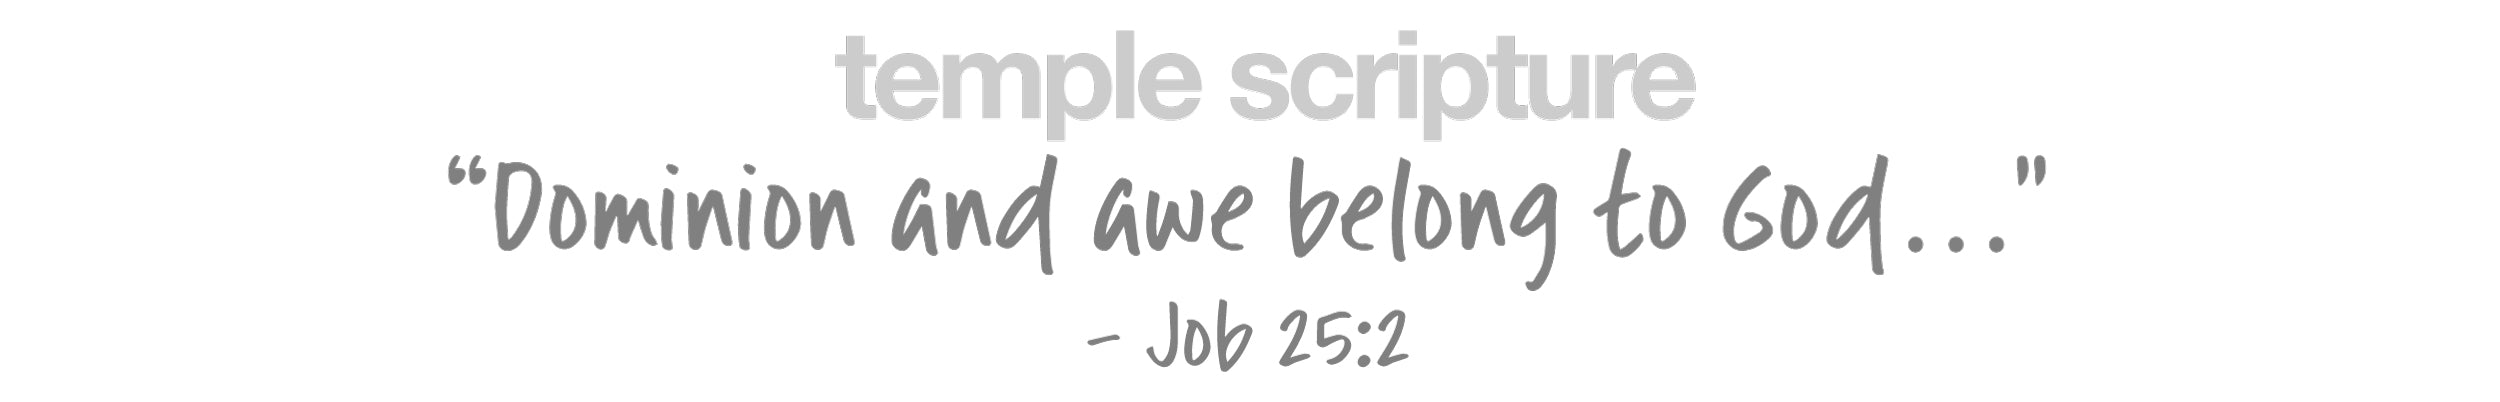 Dominion and awe belong to God… -Job 25:2